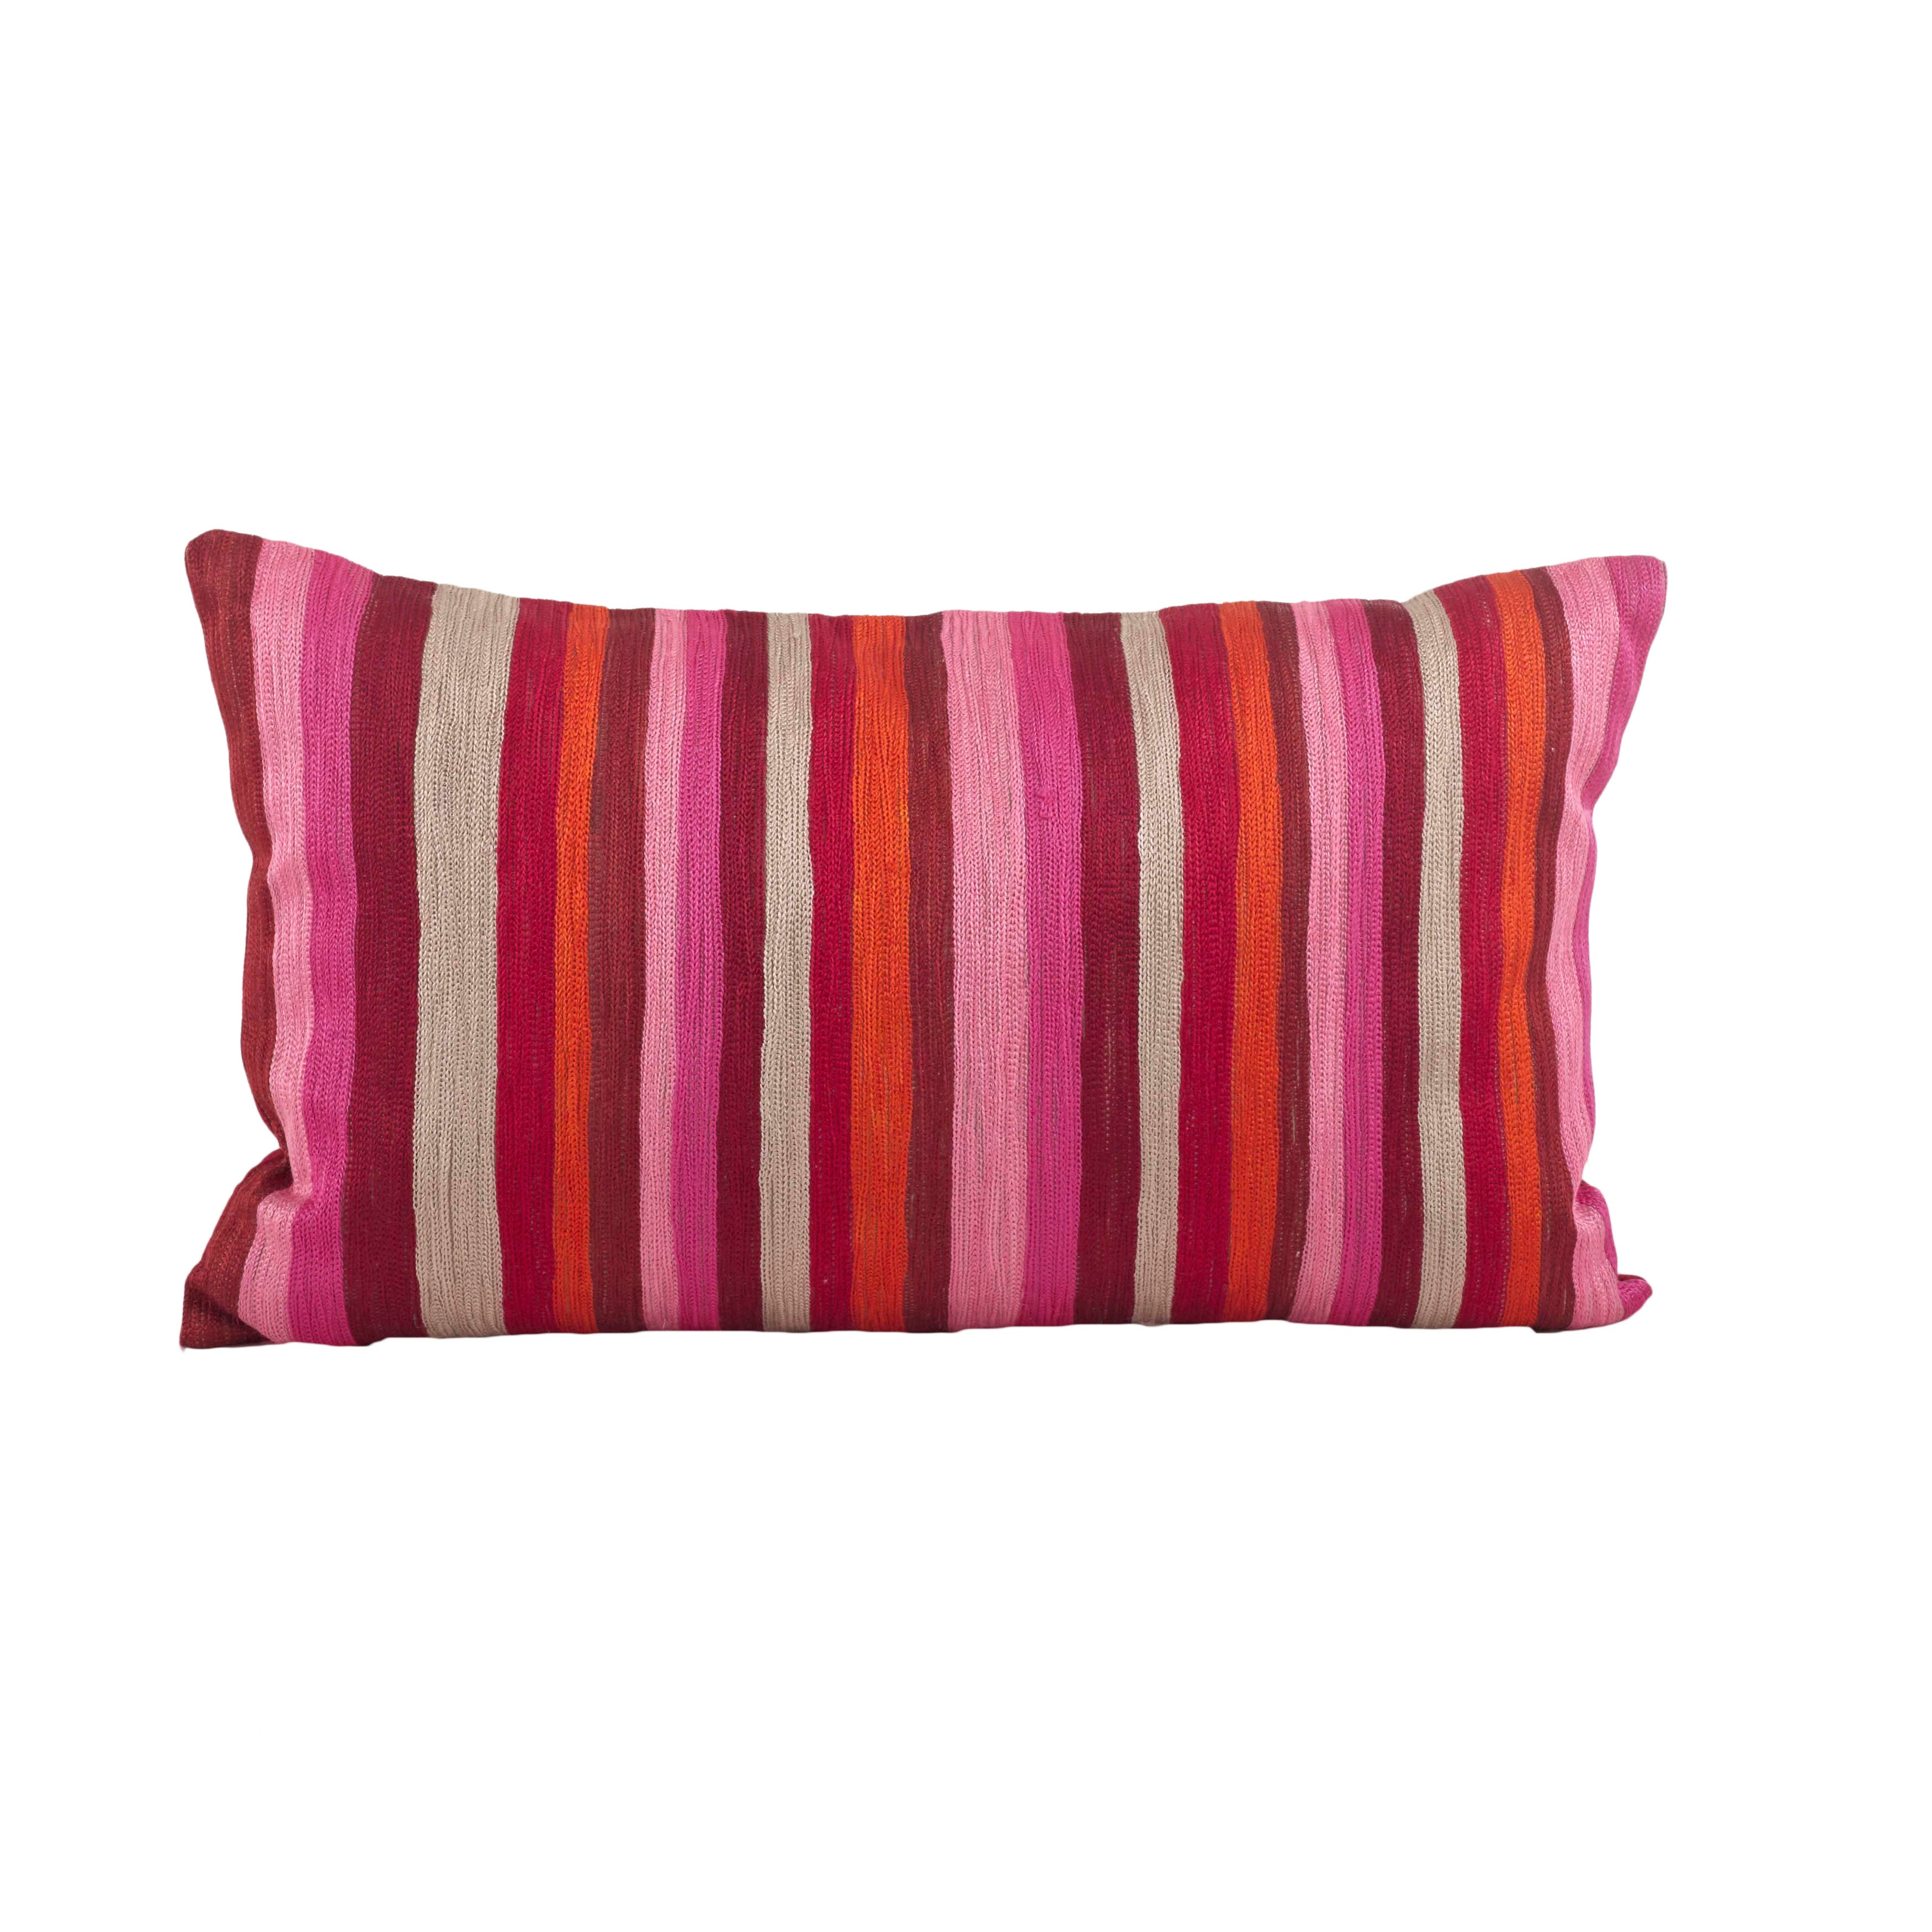 Striped Design Down Filled Decorative Throw Pillow Overstock 10084631 Sorbet